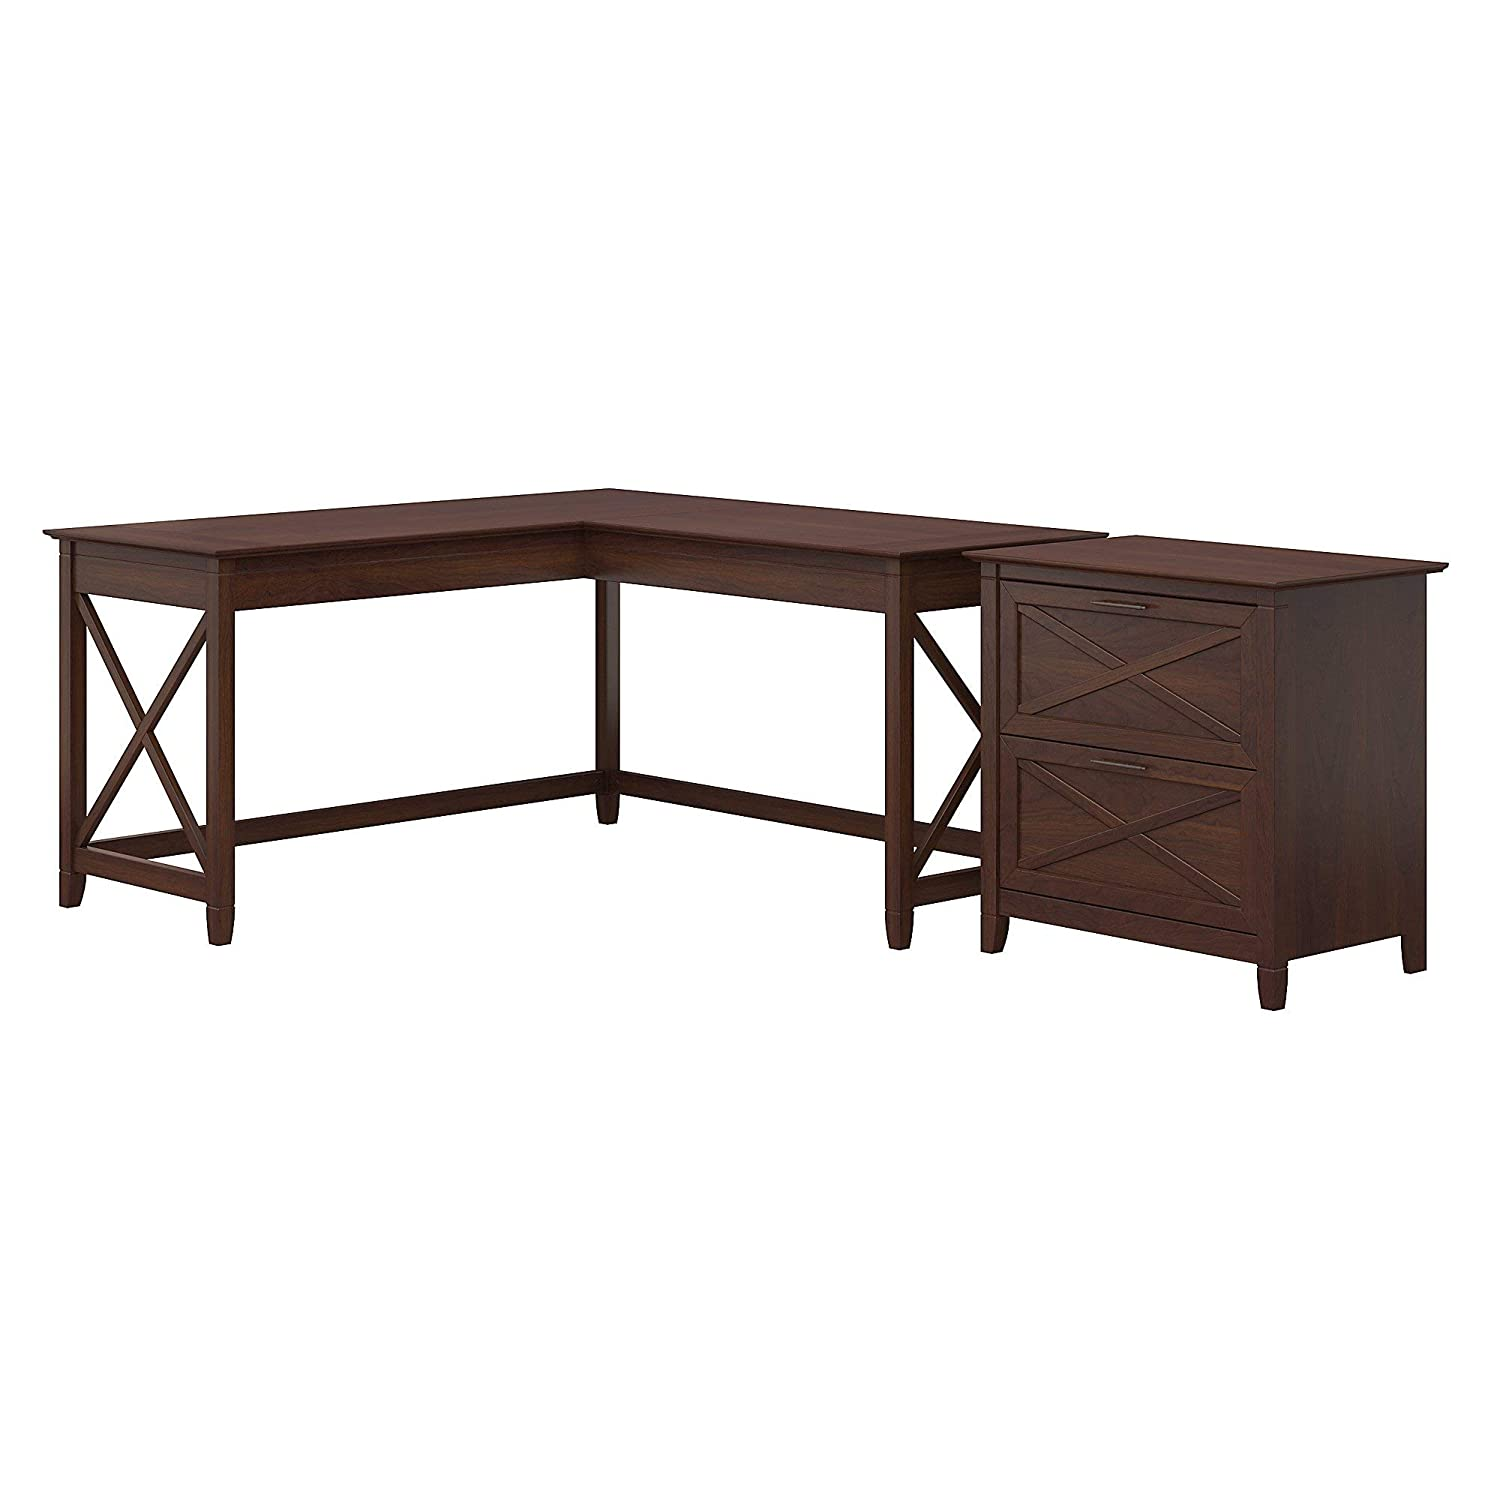 Bush Furniture Key West 60W L Shaped Desk with 2 Drawer Lateral File Cabinet, Bing Cherry